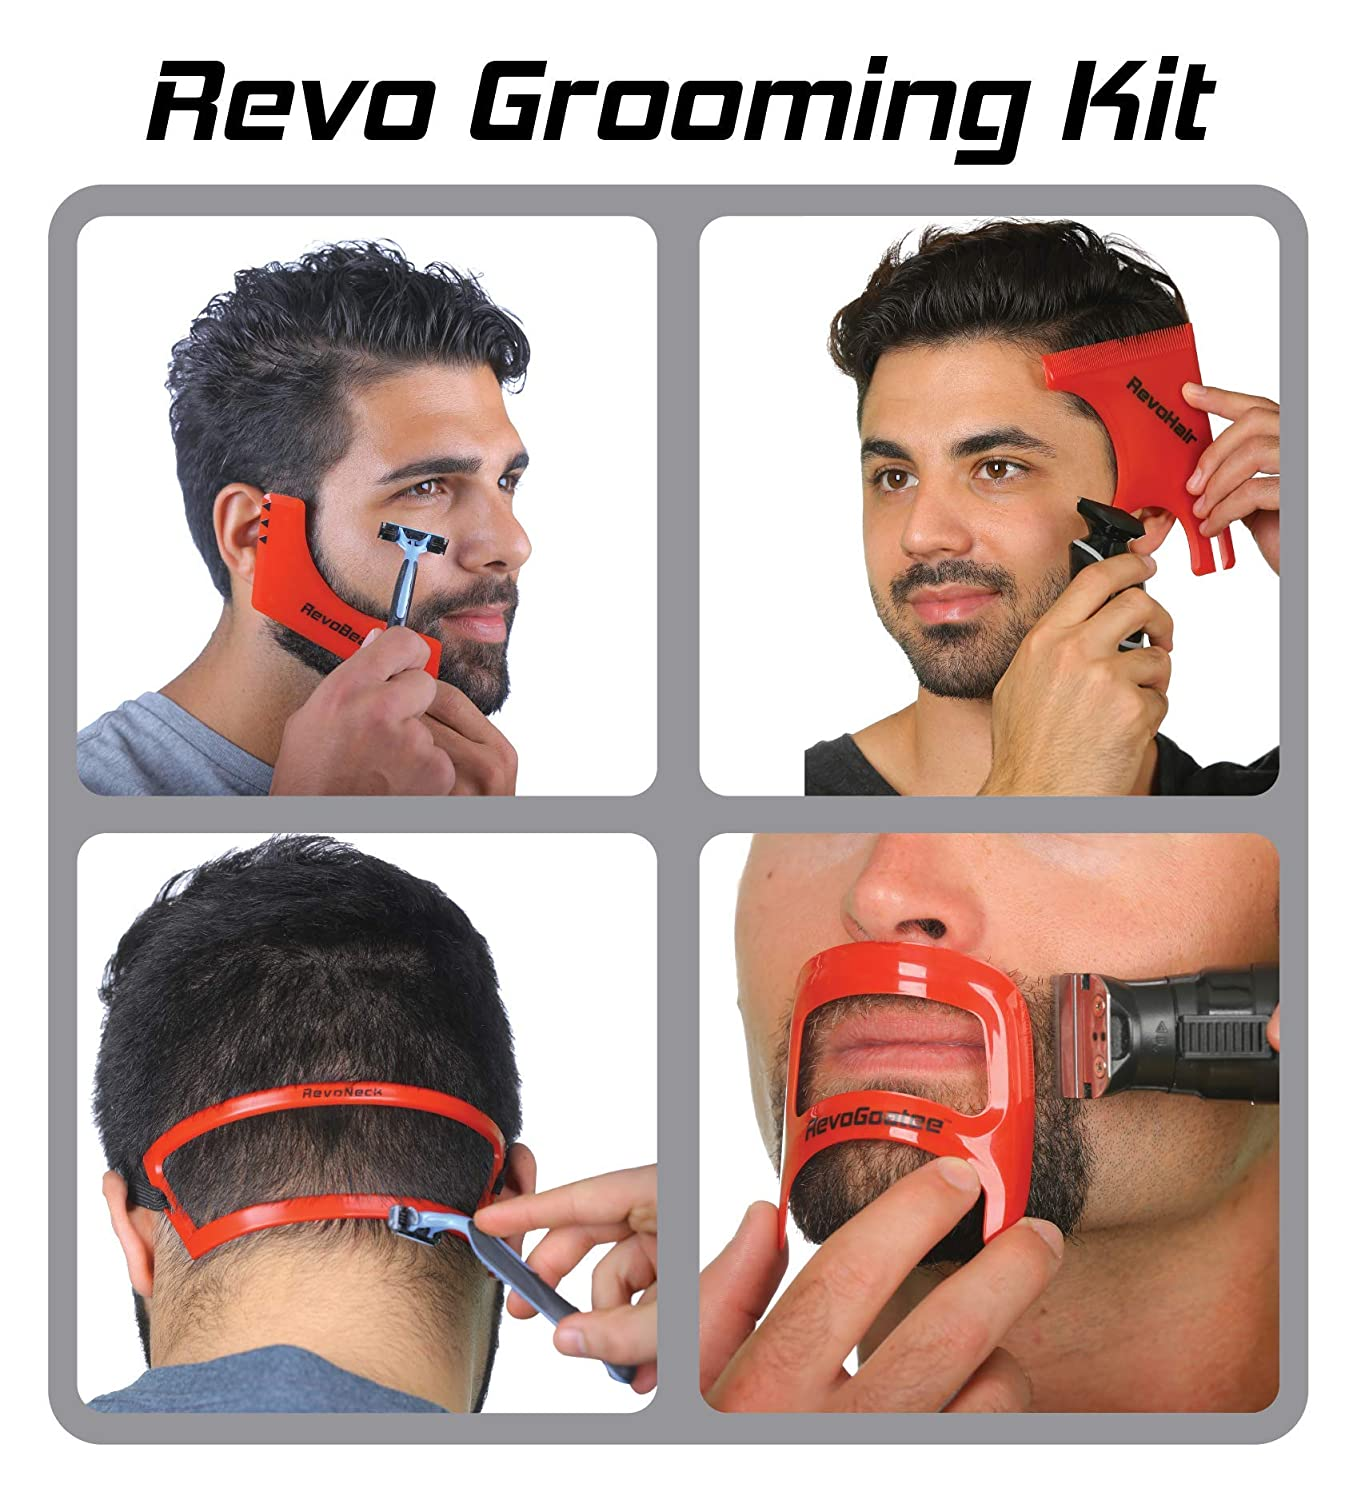 Revo Haircut Kit - Beard, Hair, Goatee, and Neckline Shaving Template Guide - Perfect Hairline Lineup and Beard Shaping Tool - Hair Cutting and Grooming Kit - One Size Fits All - Barber Supplies